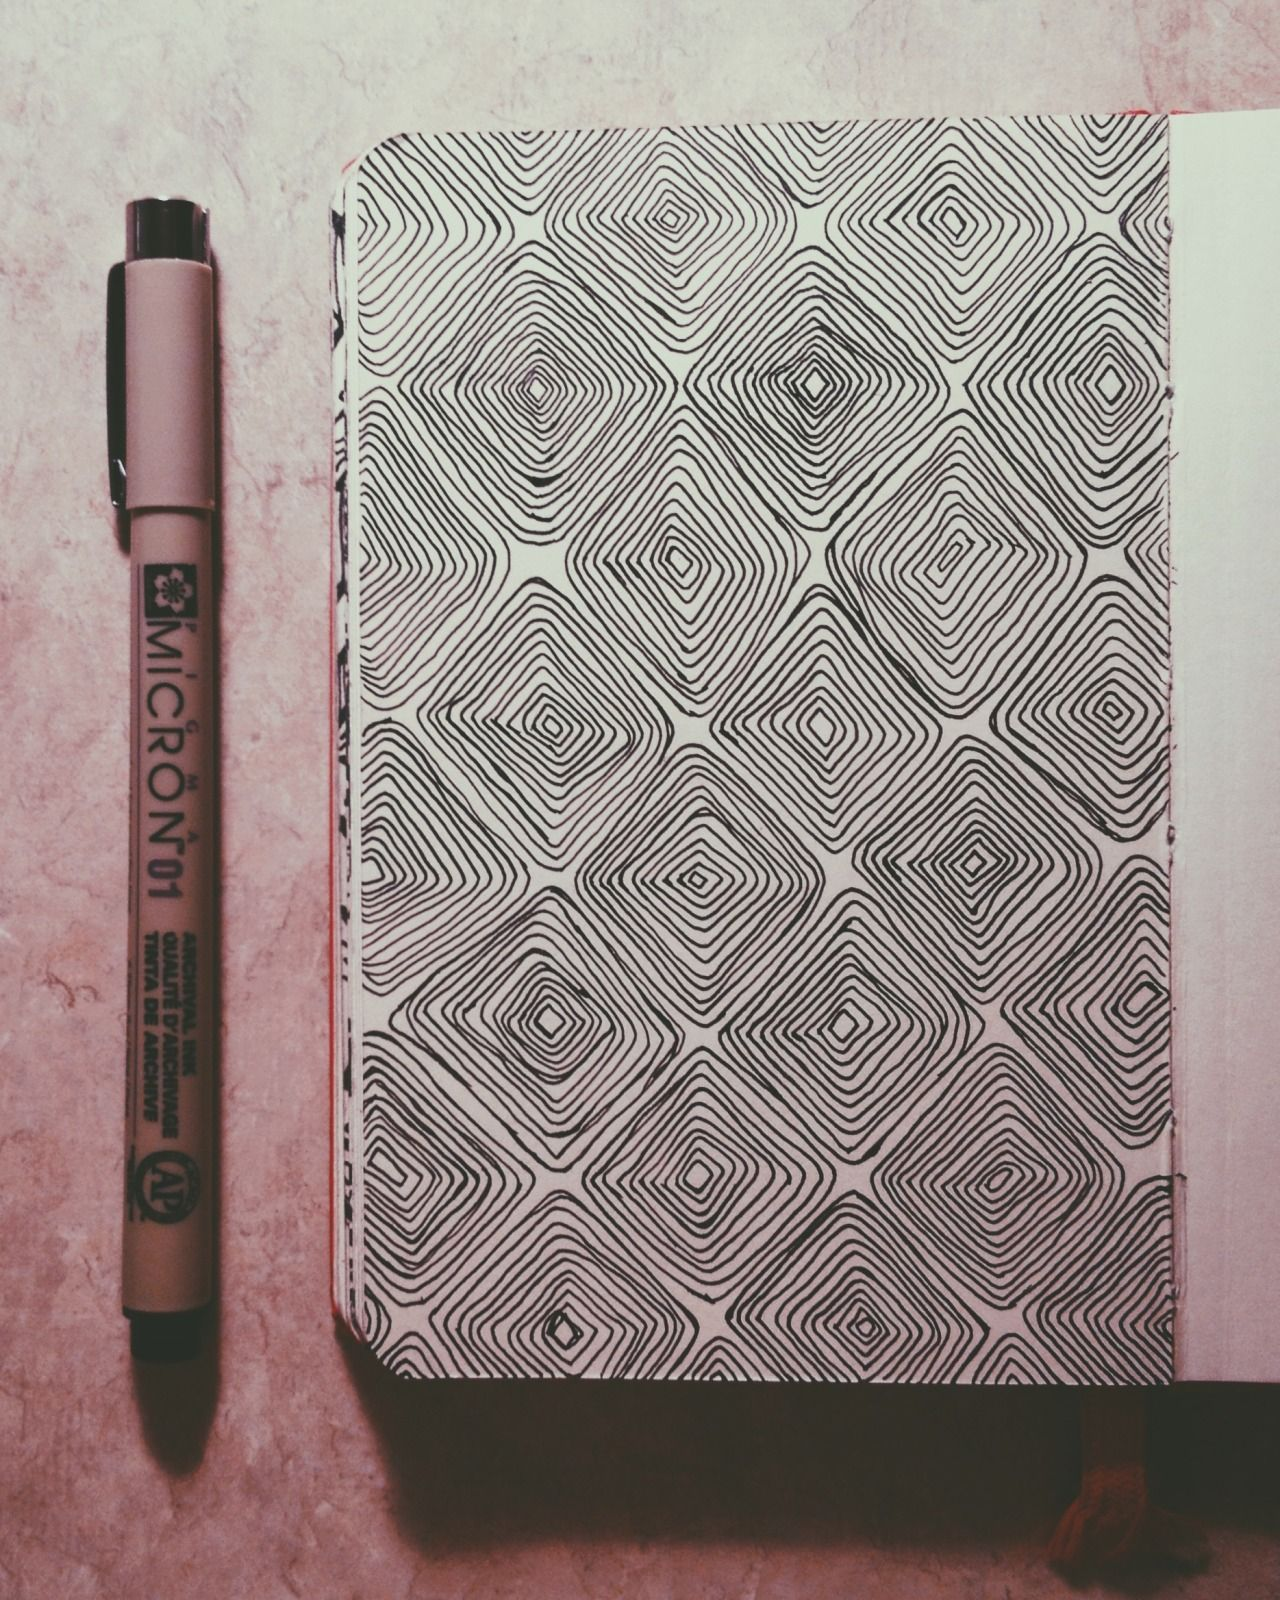 I really like patterns. Done with microns in my little red moleskine ...